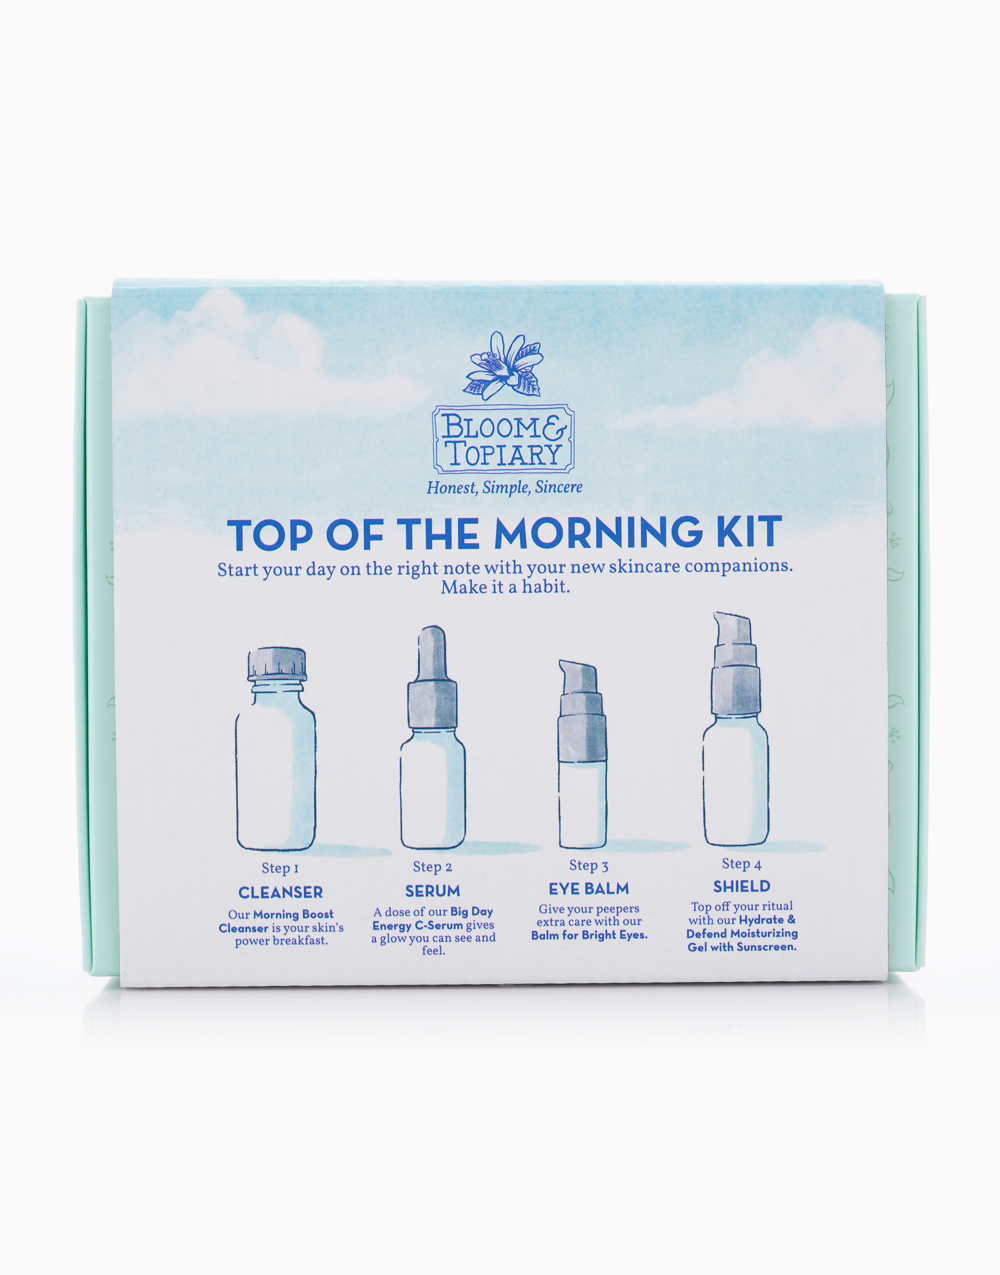 Top of the Morning Kit by Bloom & Topiary